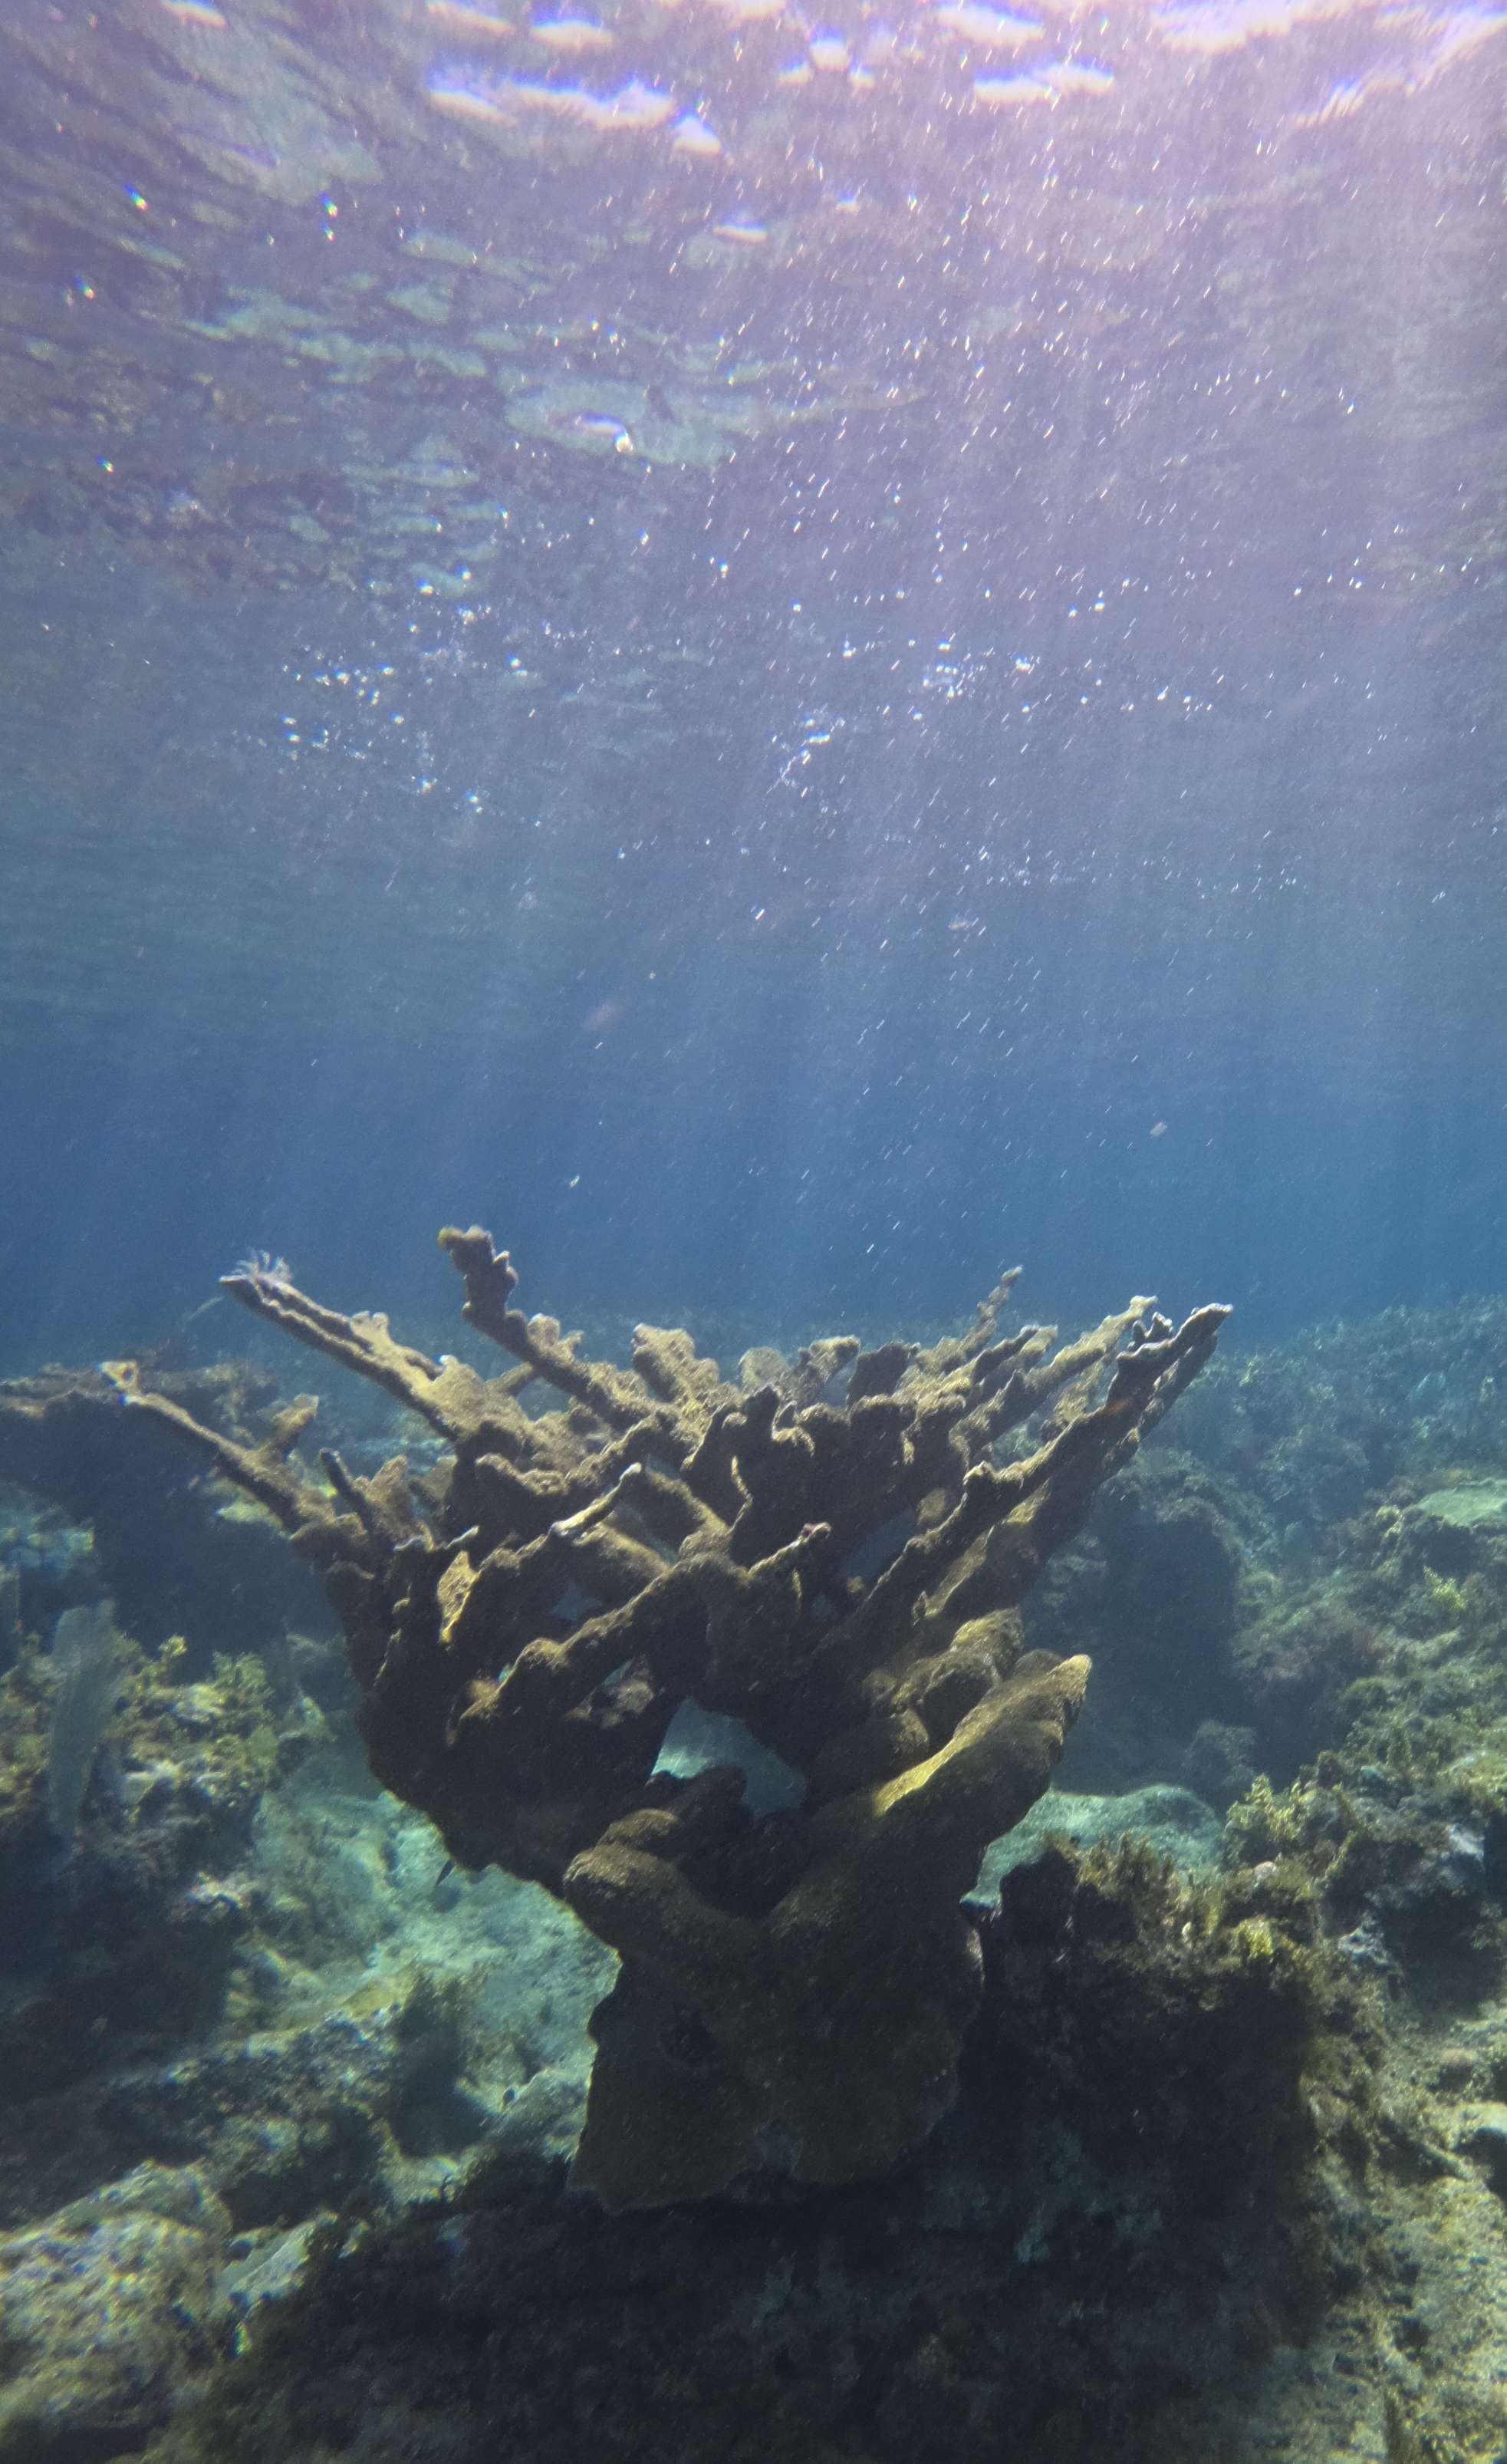 A long-lived Elkhorn coral colony on the reef